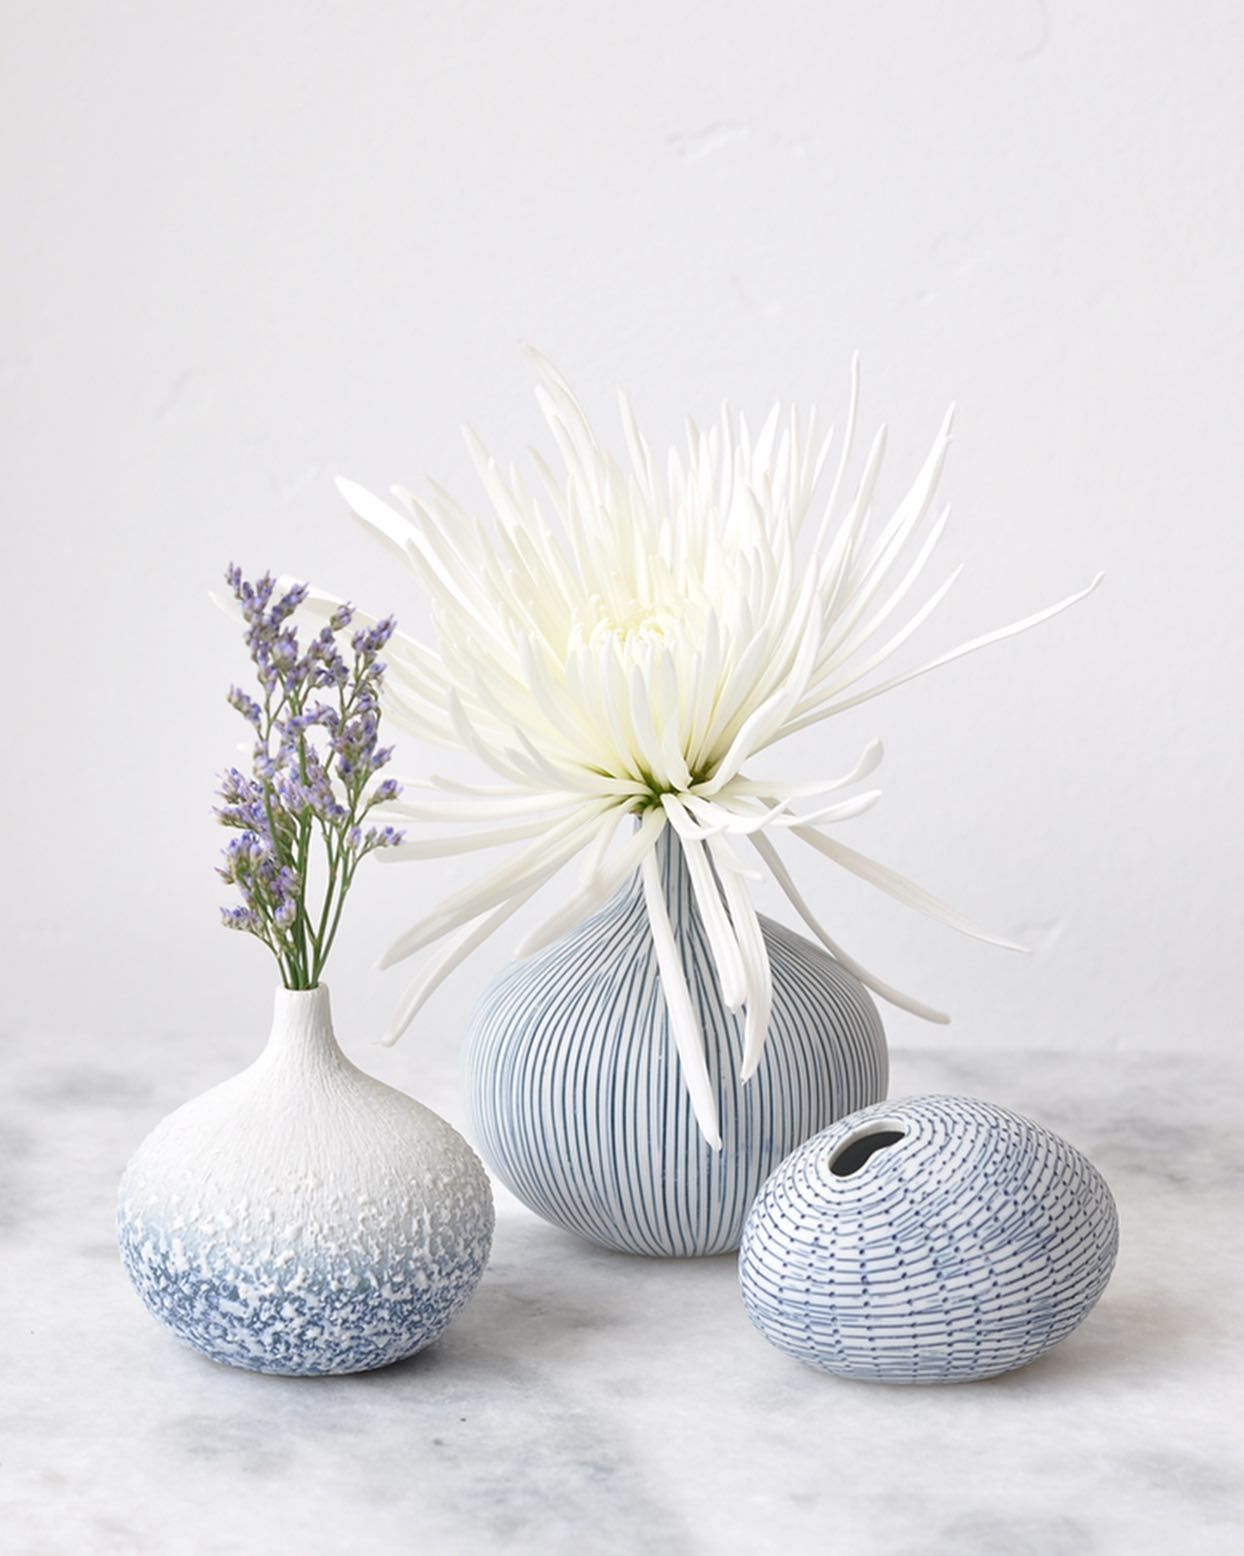 NEW (small) selection of these popular bud vases are now